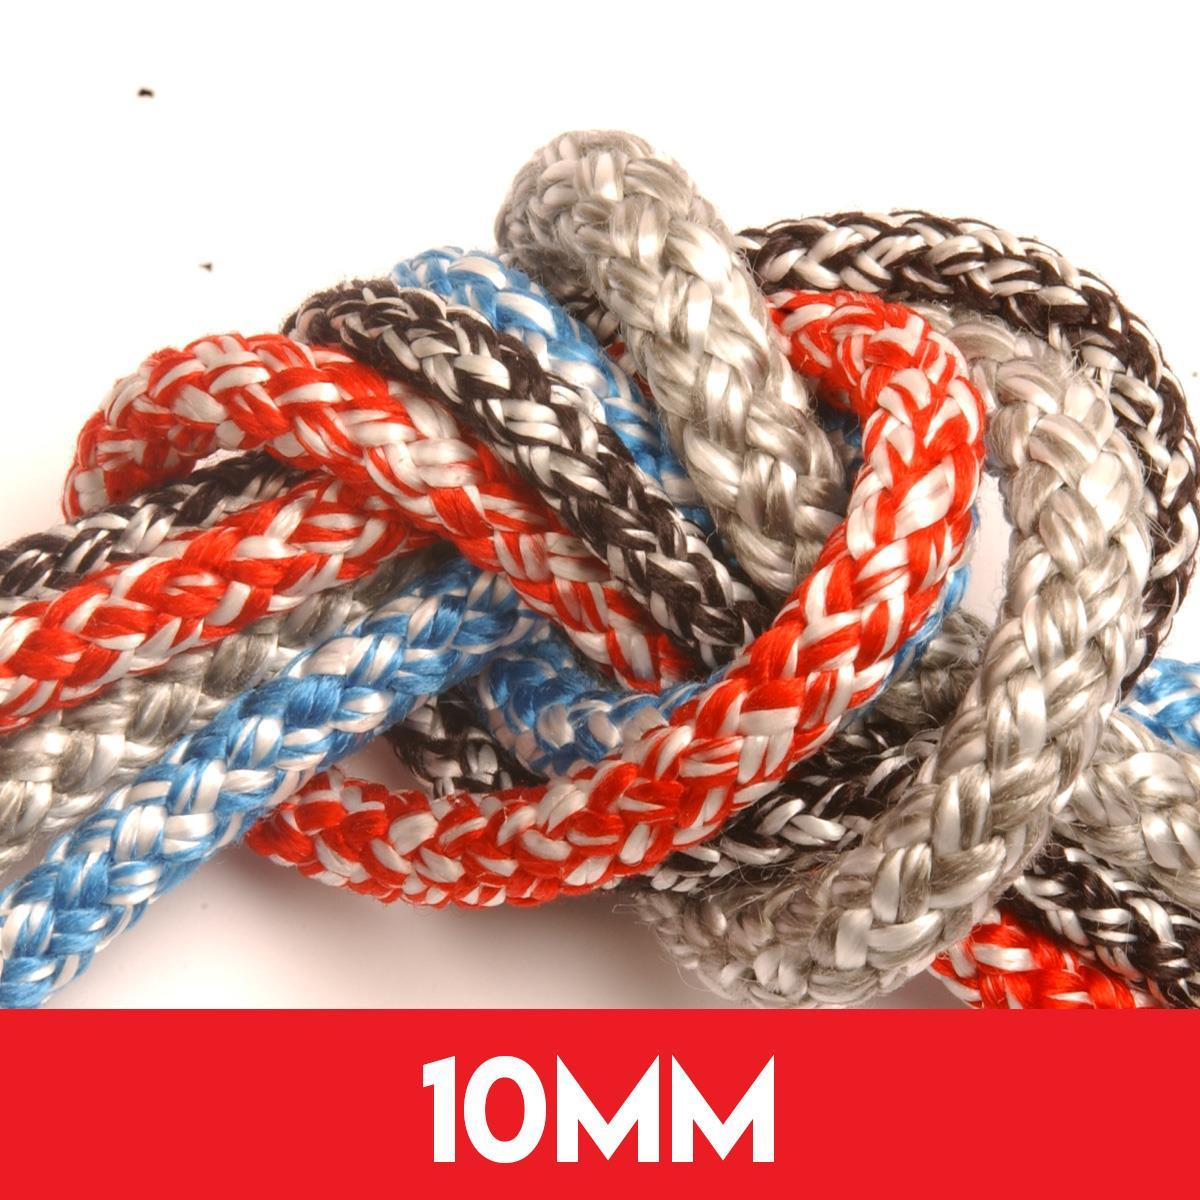 10mm Gottifredi Maffioli Swiftcord Rope